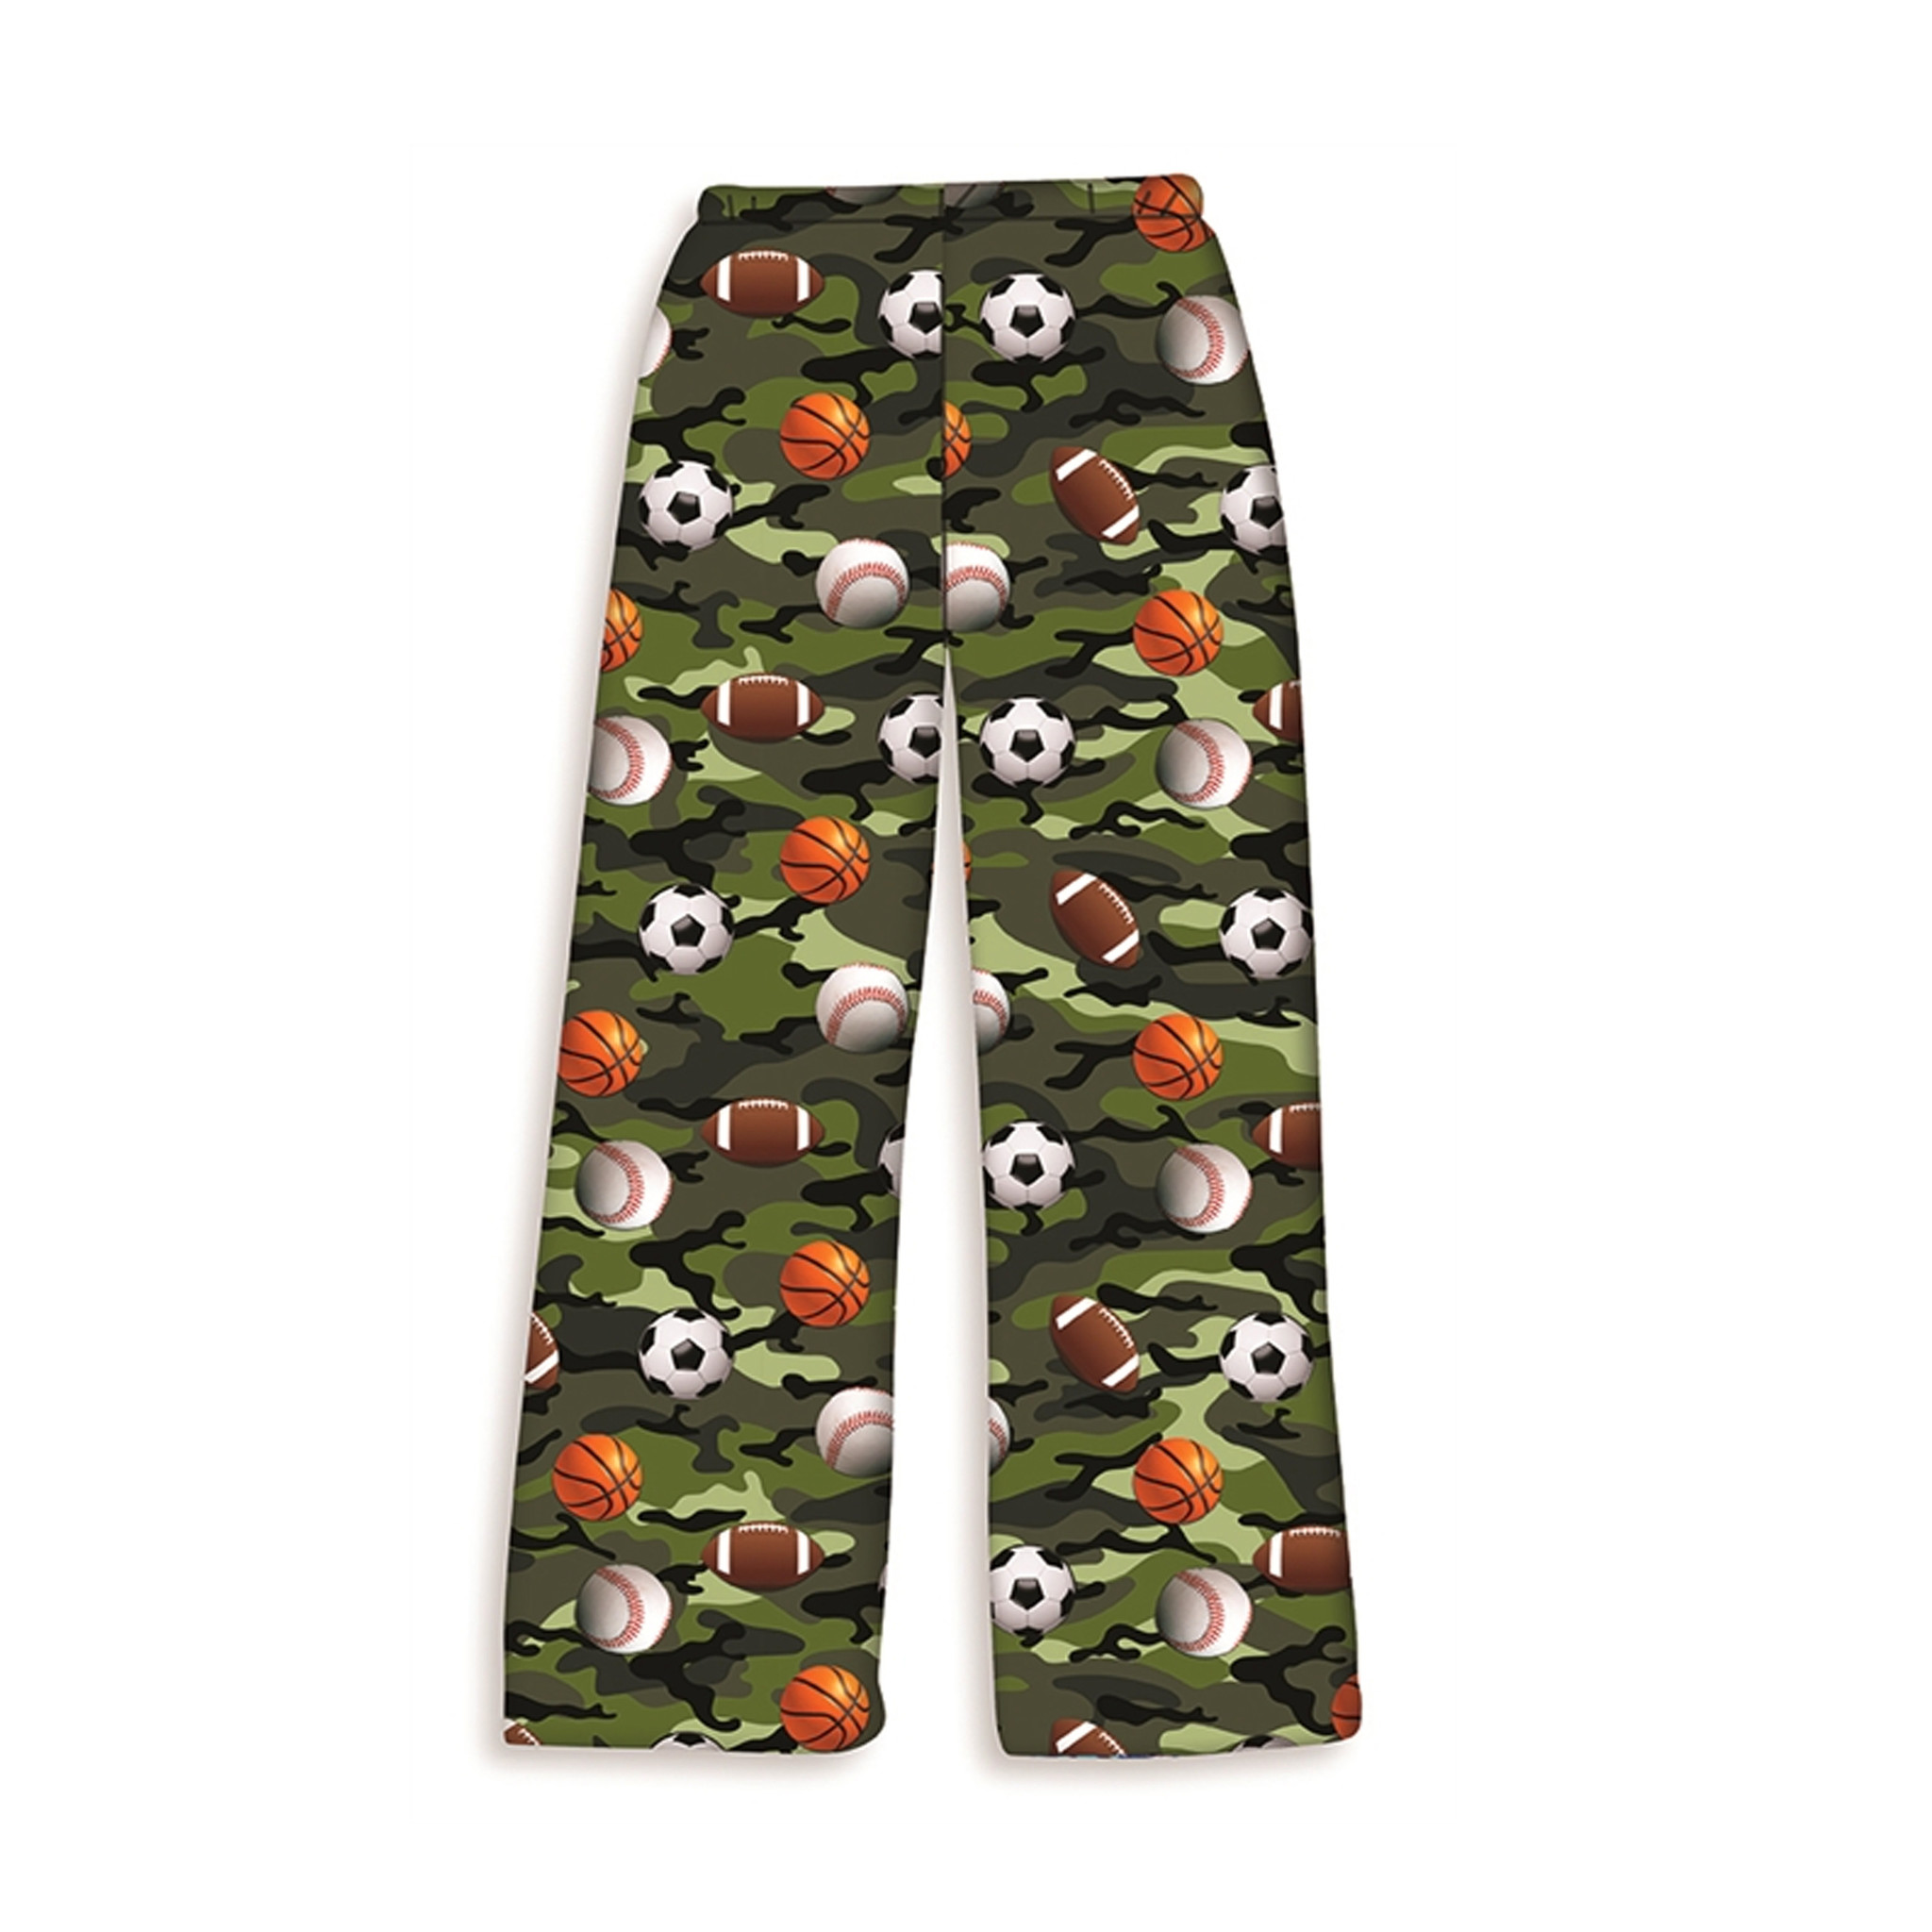 Camo Plush Sports Lounge Pants